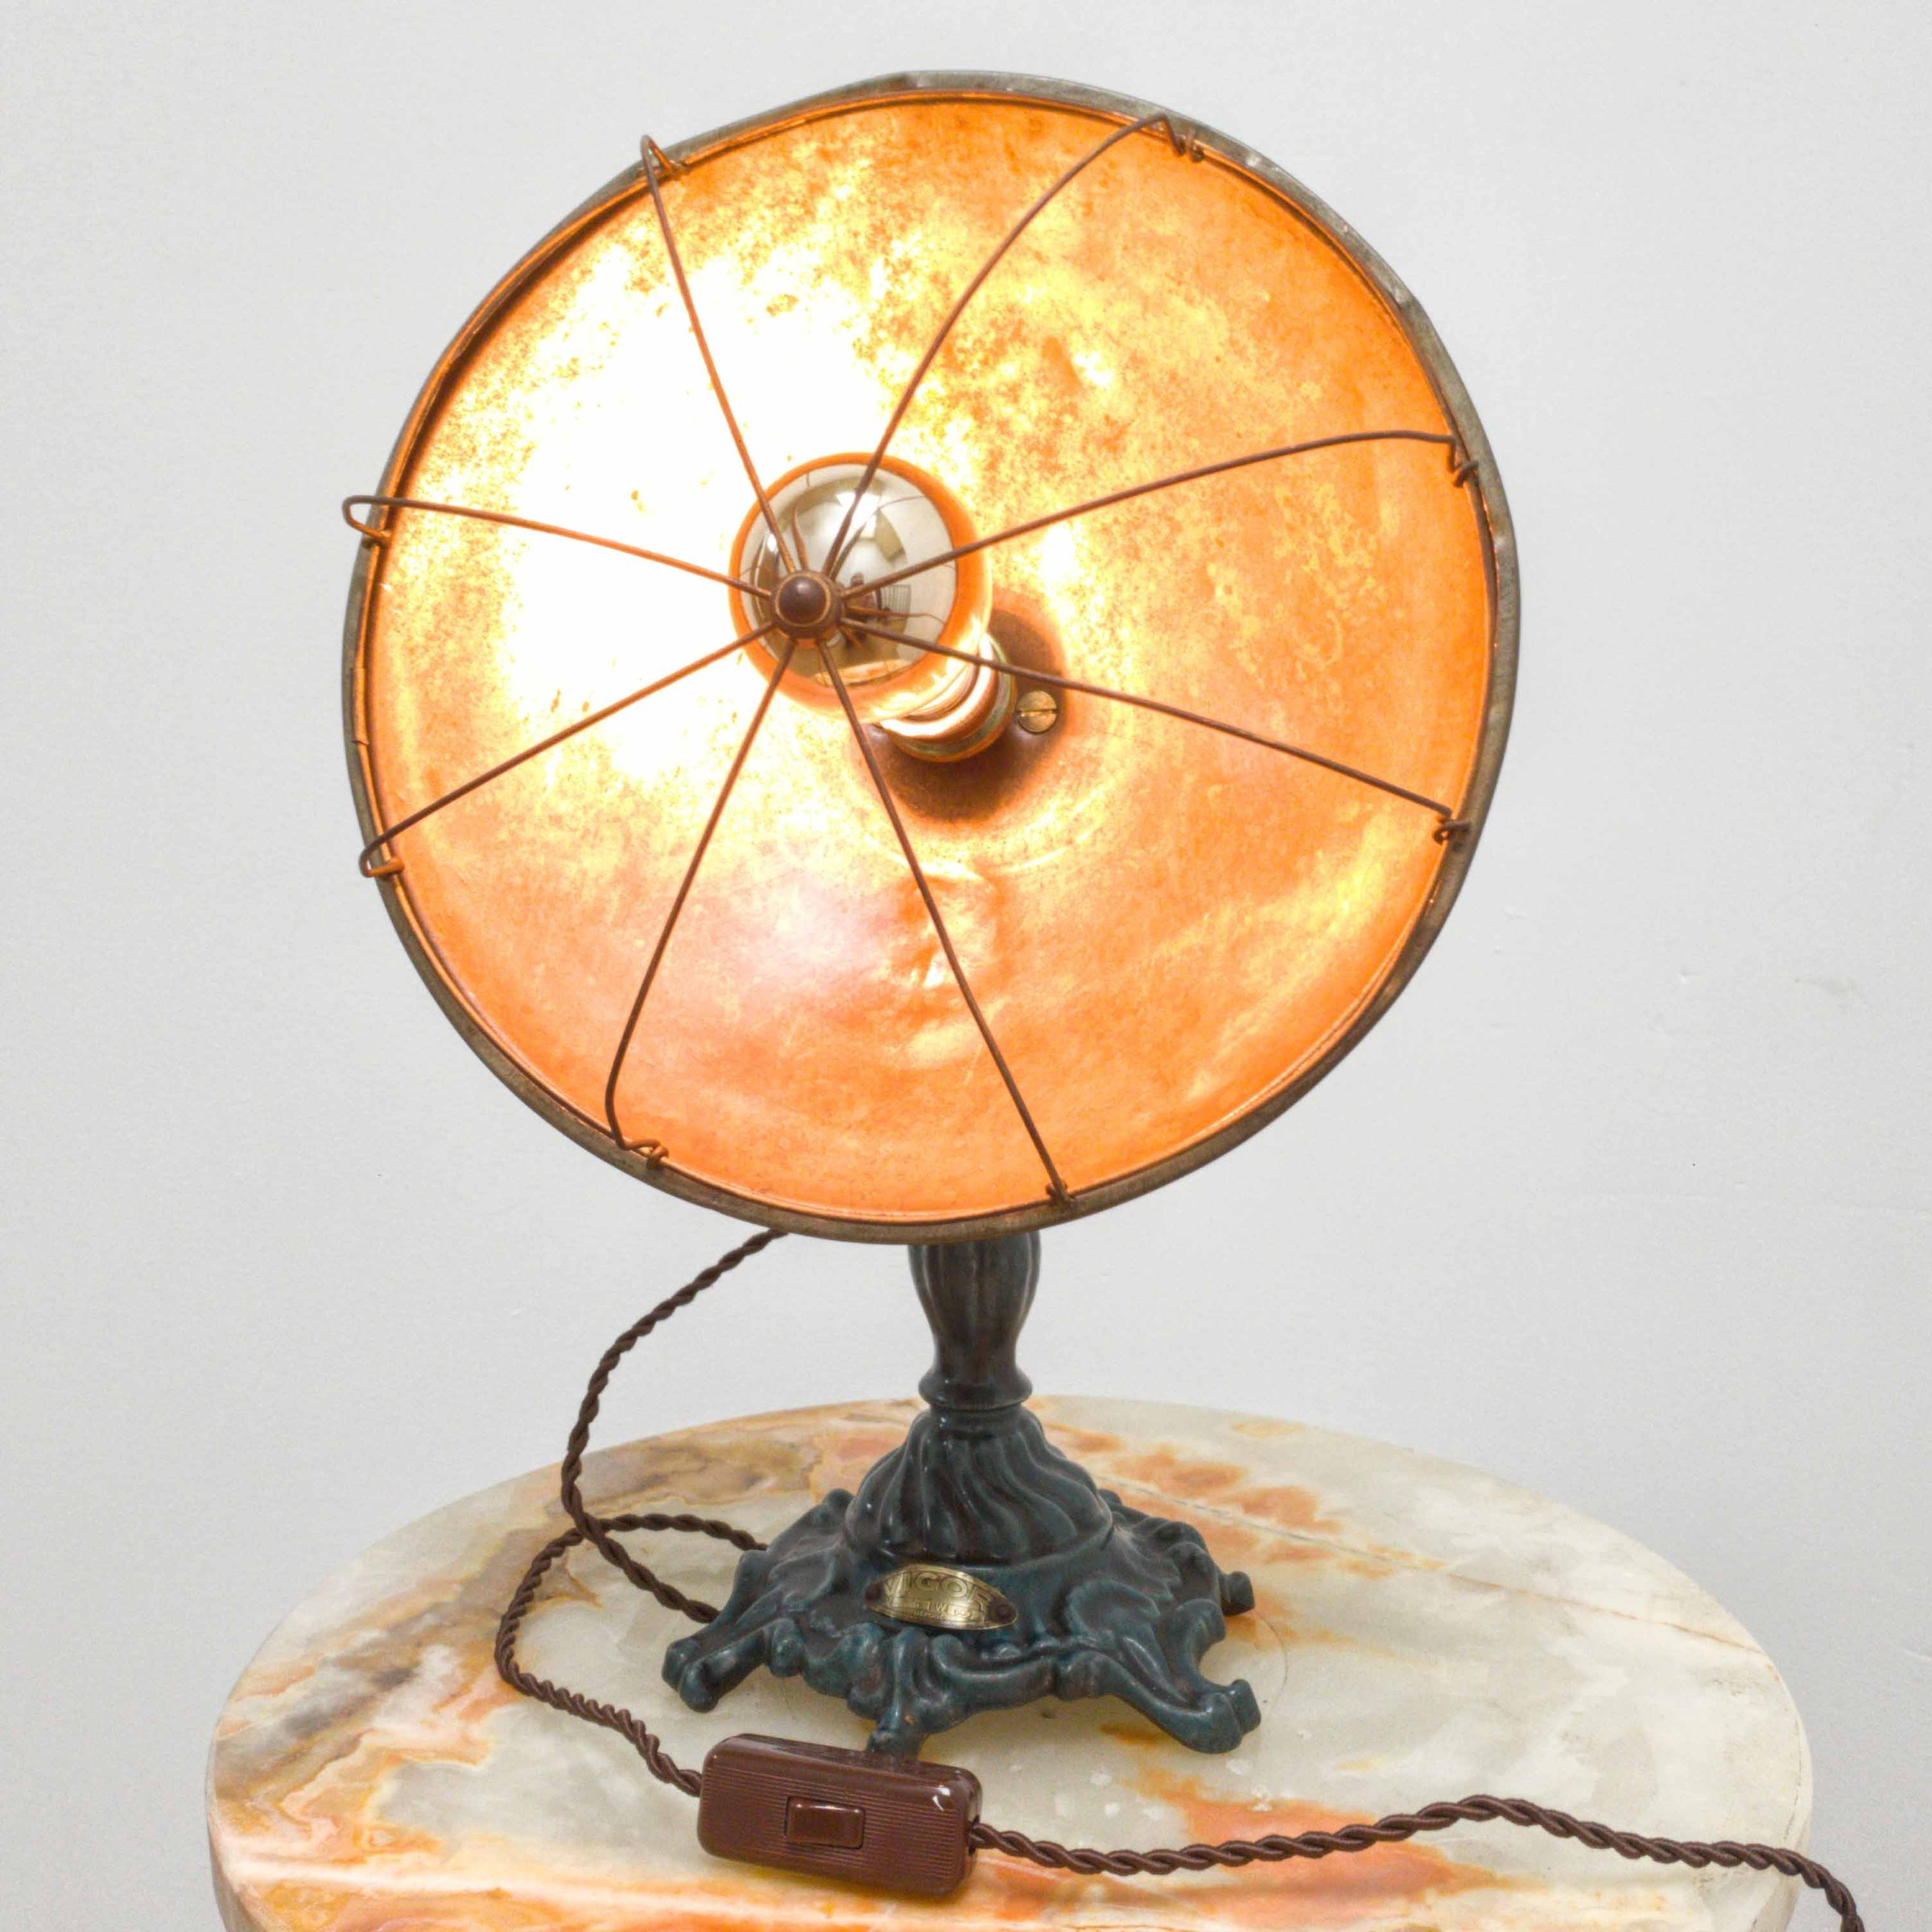 Old industrial table lamps copper or cast iron base